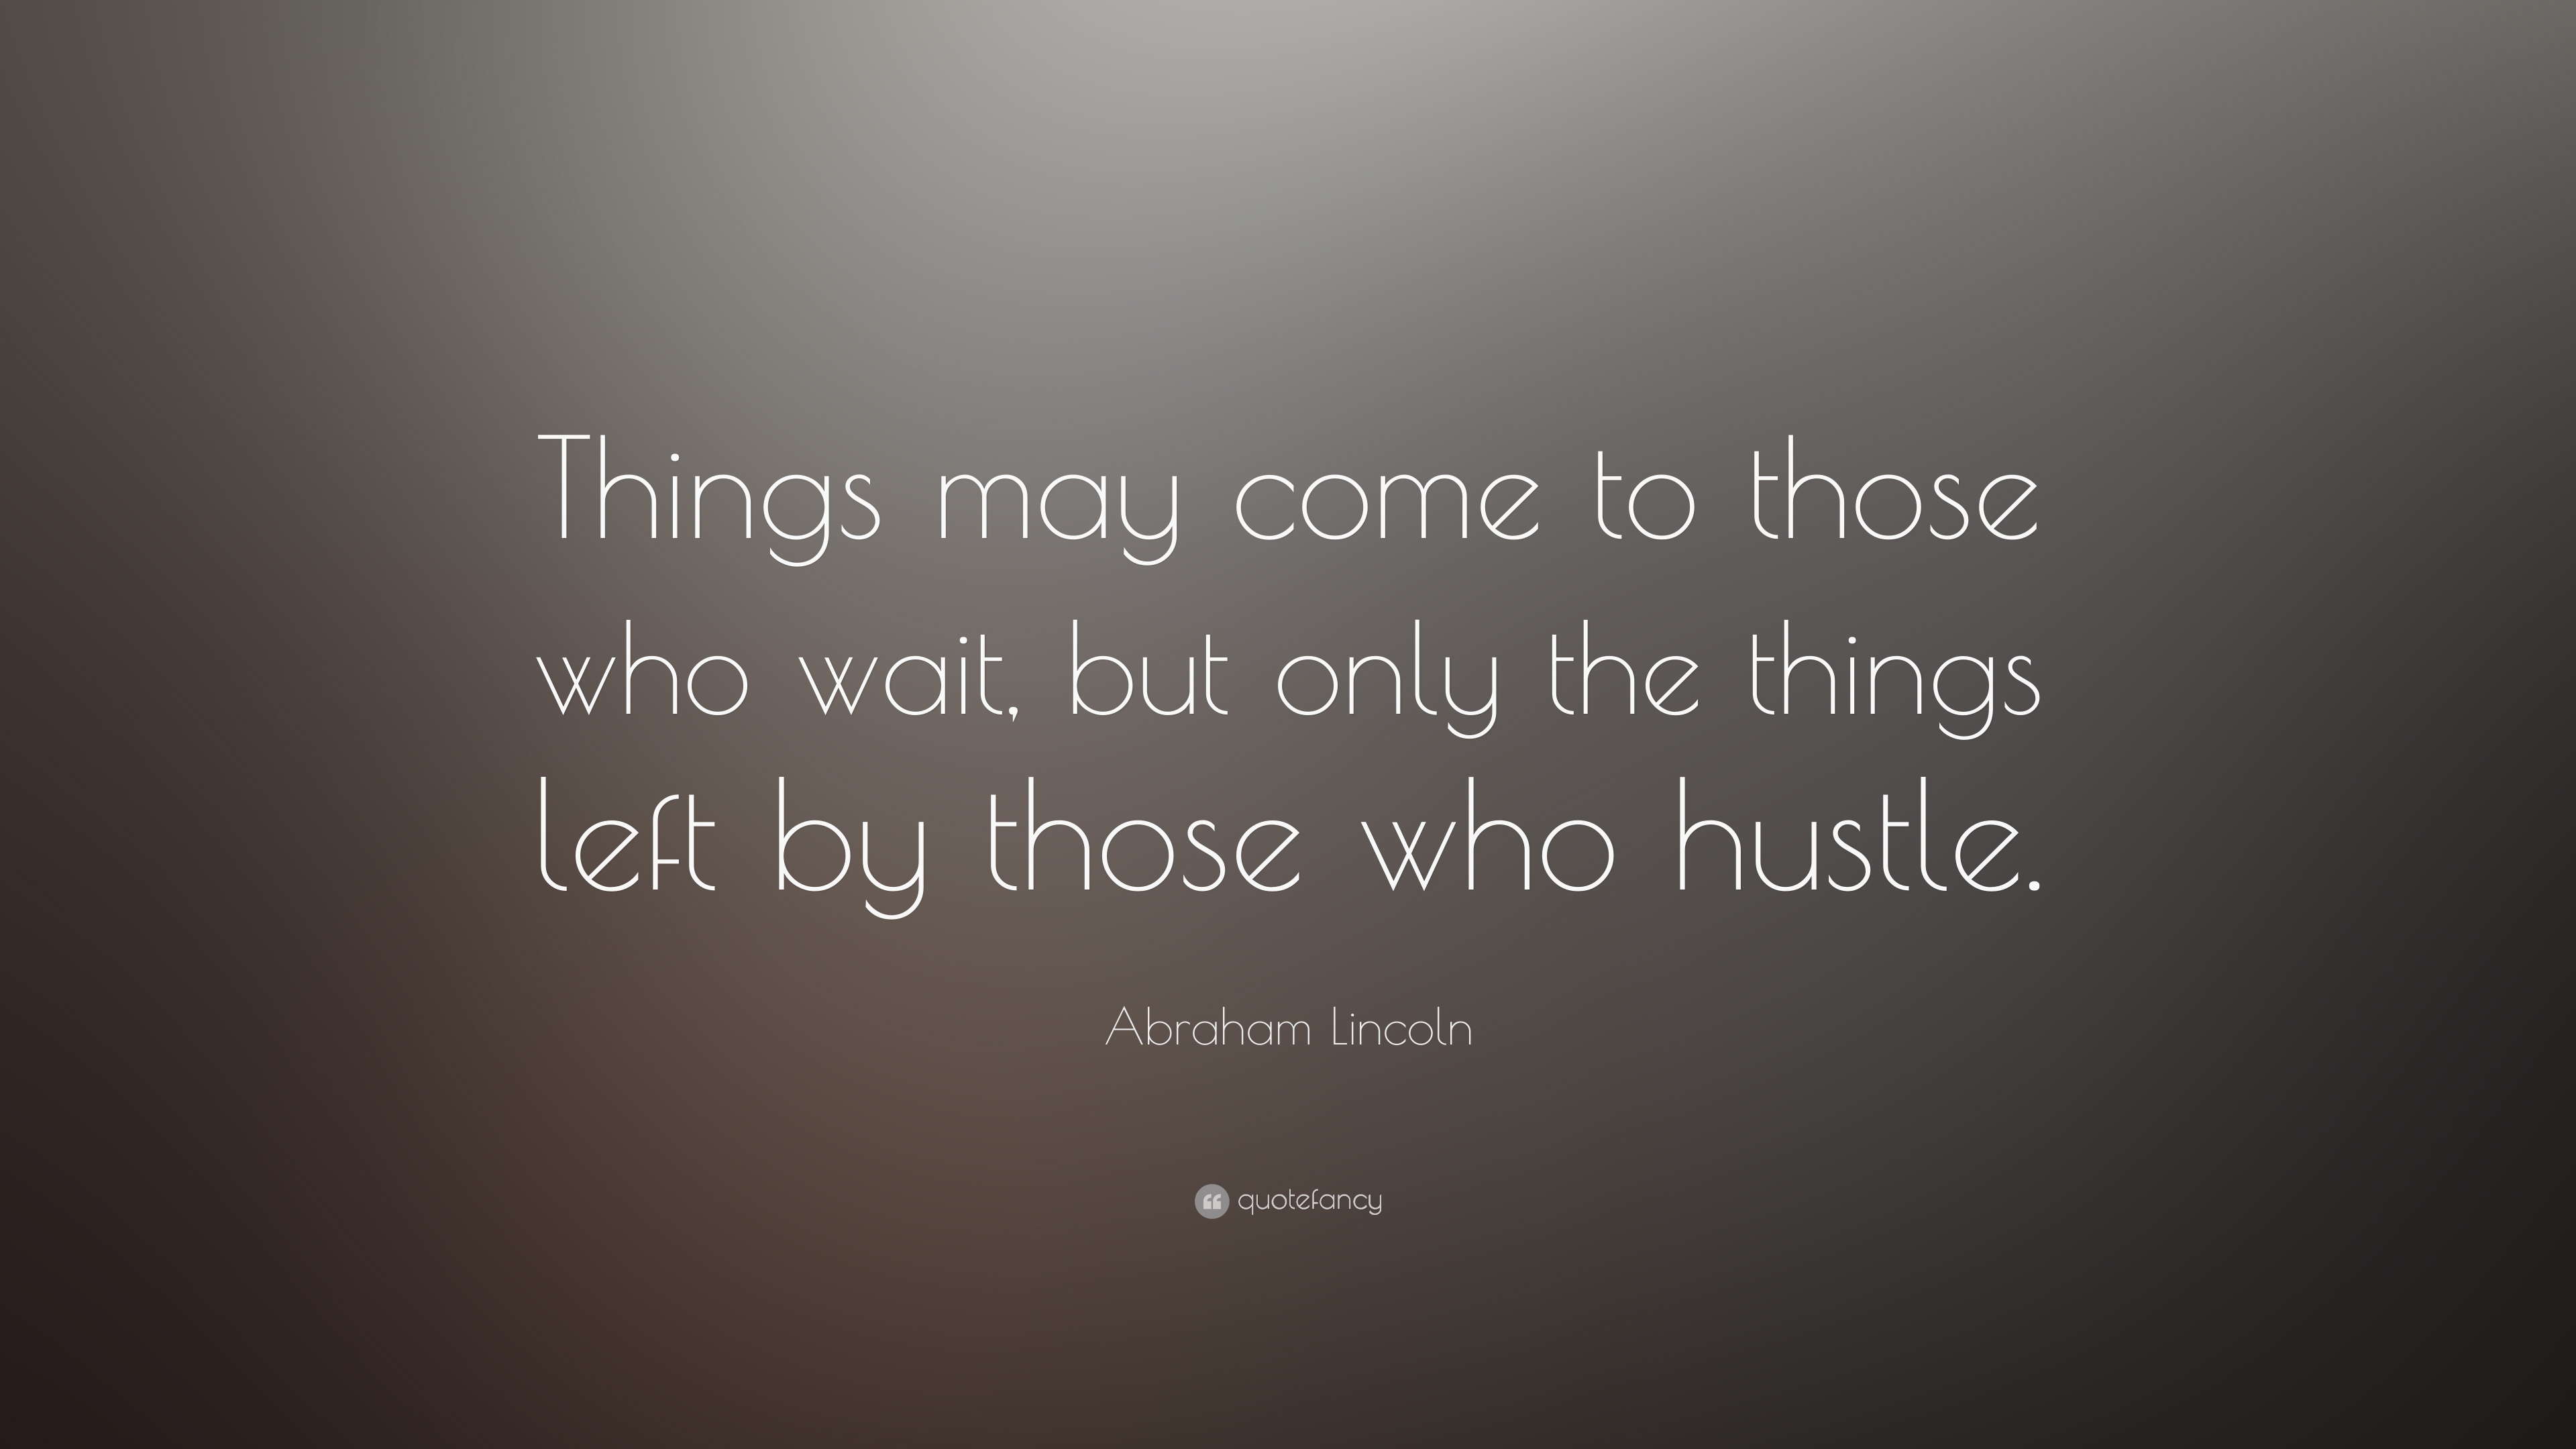 Abraham Lincoln Quote Things May Come To Those Who Wait But Only